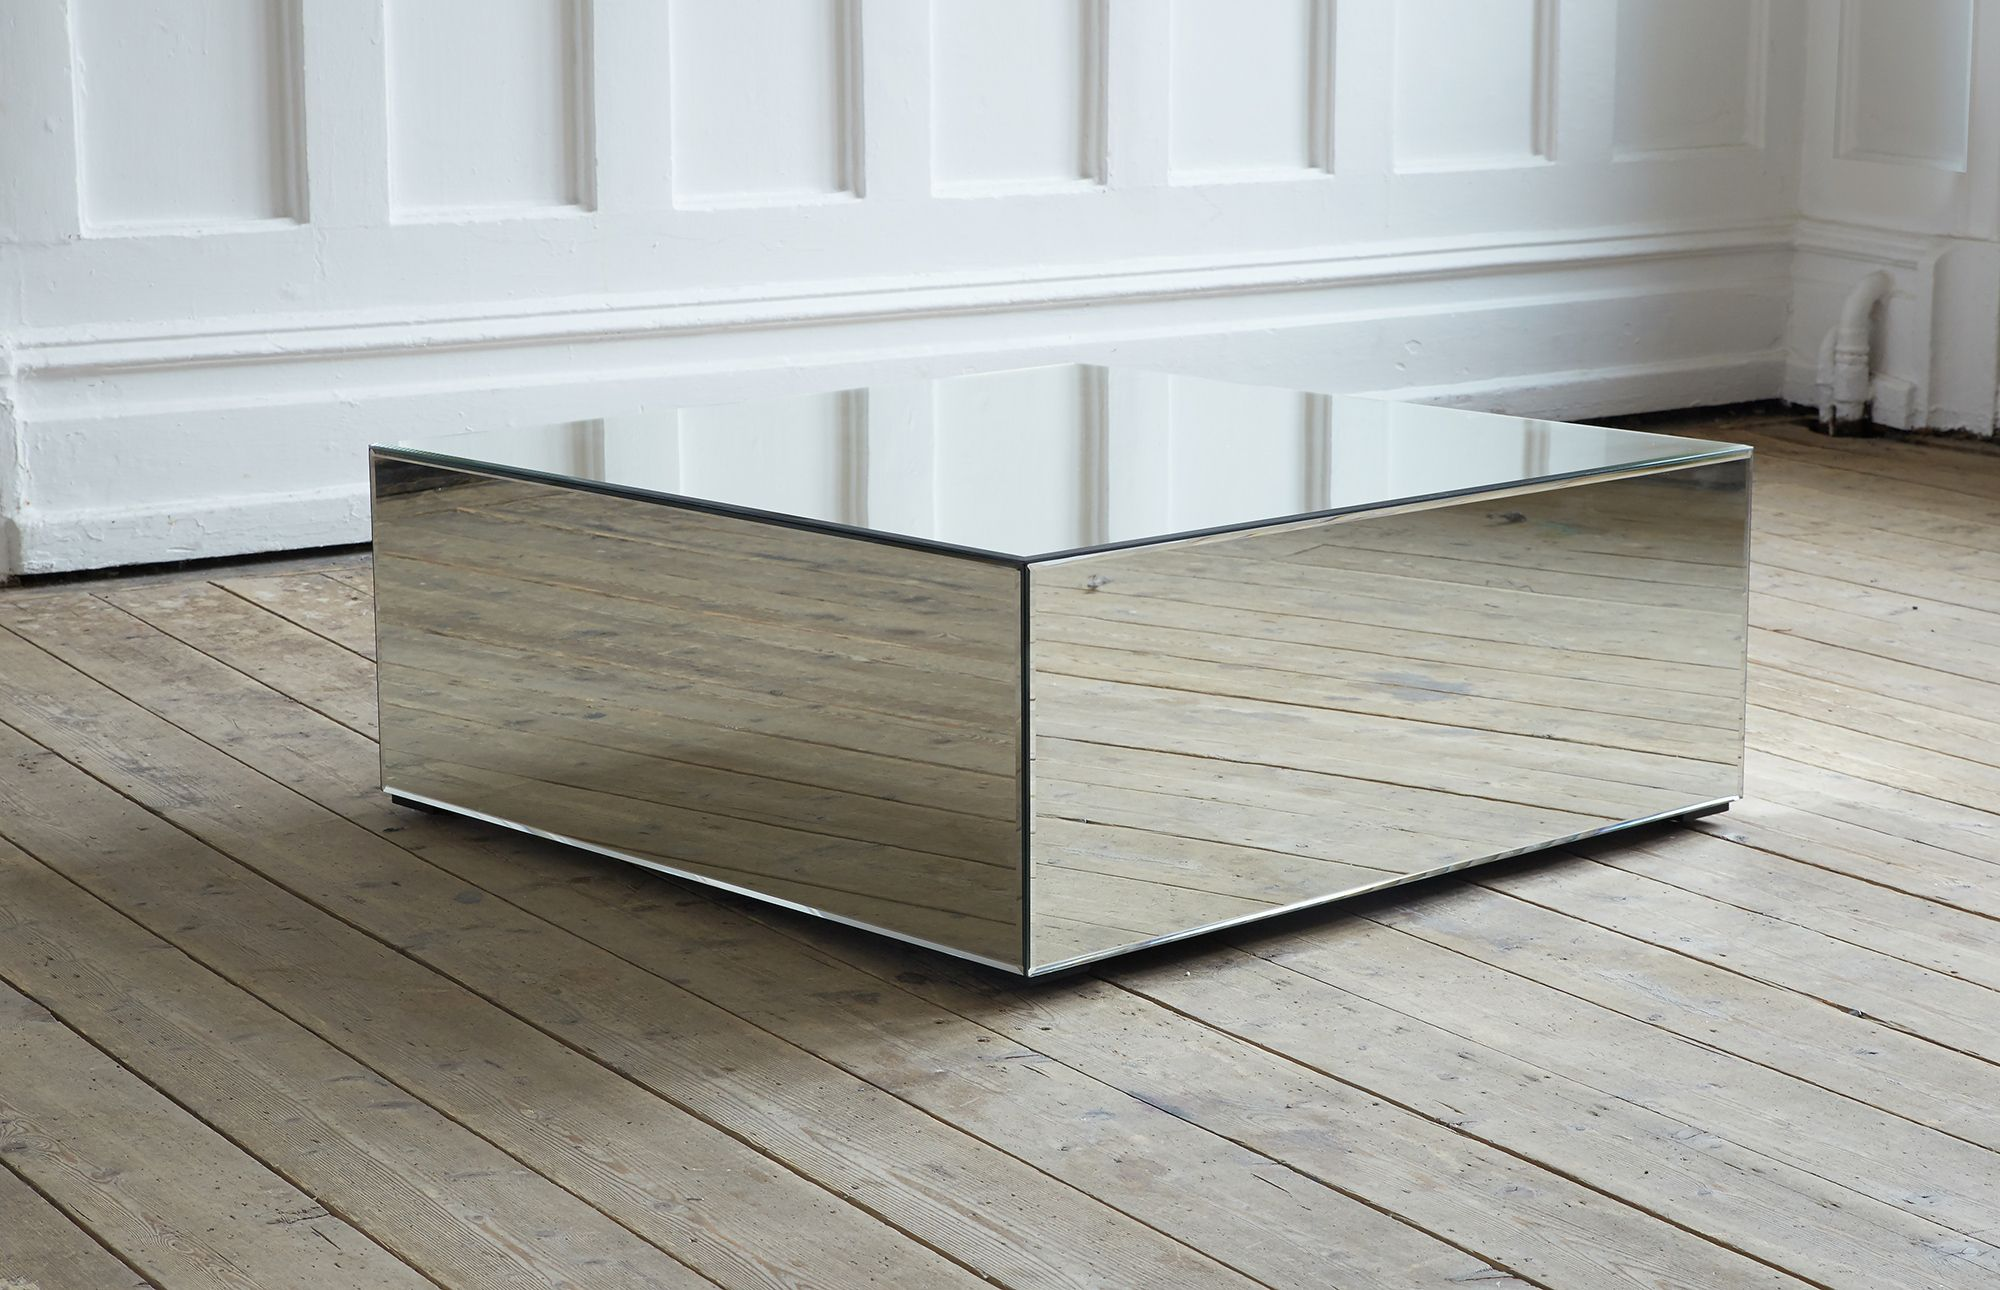 Pin By Angie Pennington On Svarvargatan Mirrored Coffee Tables Coffee Table Square Acrylic Coffee Table